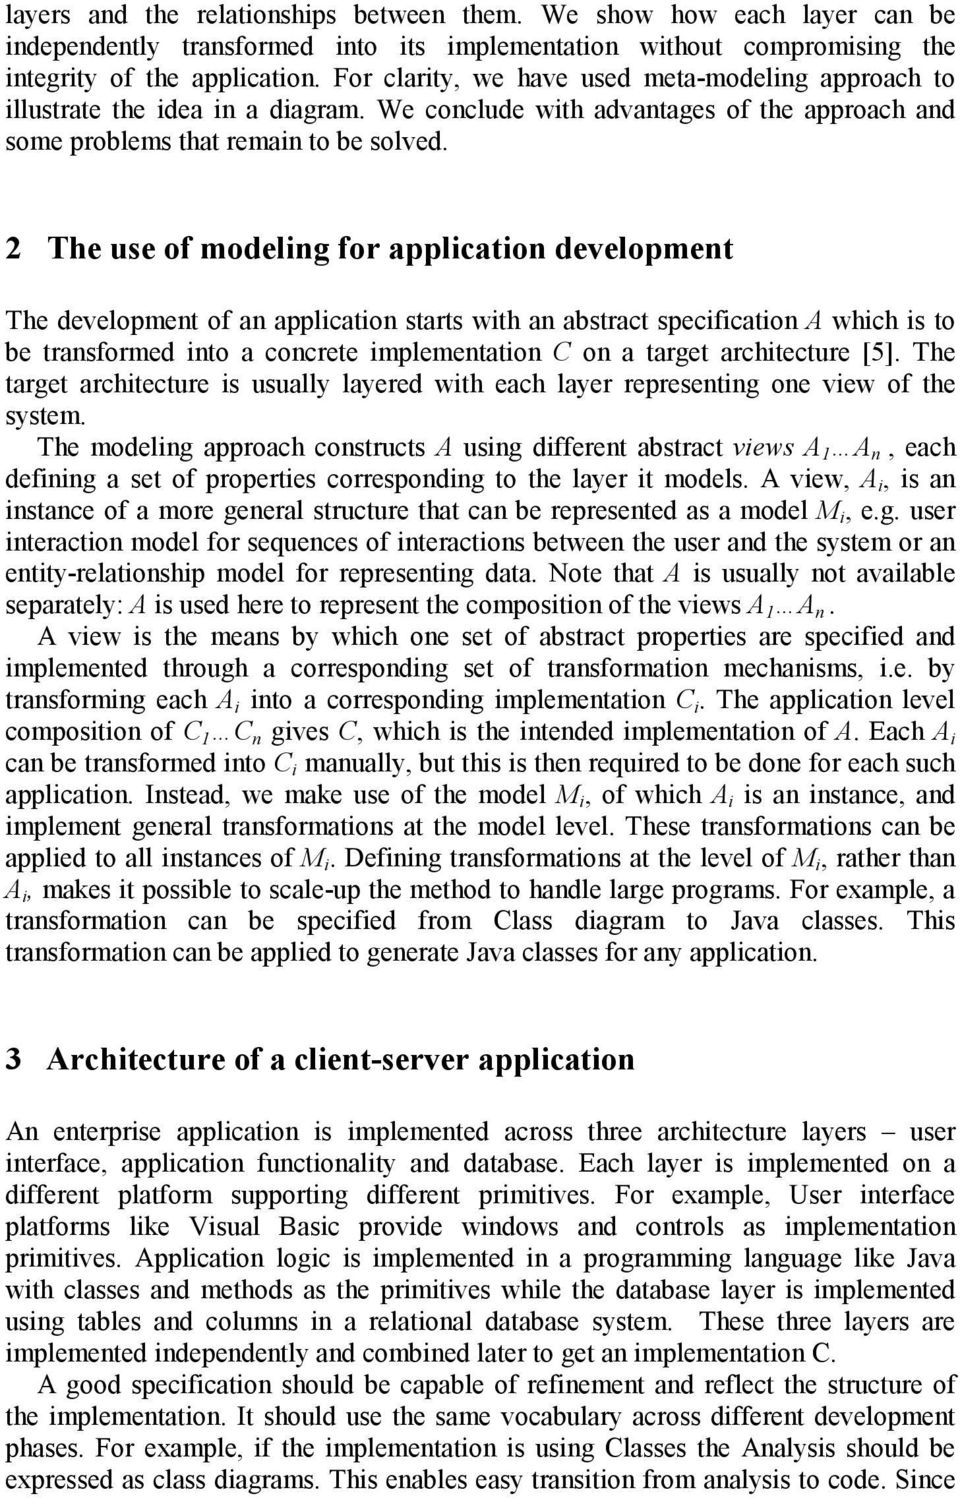 2 The use of modeling for application development The development of an application starts with an abstract specification A which is to be transformed into a concrete implementation C on a target